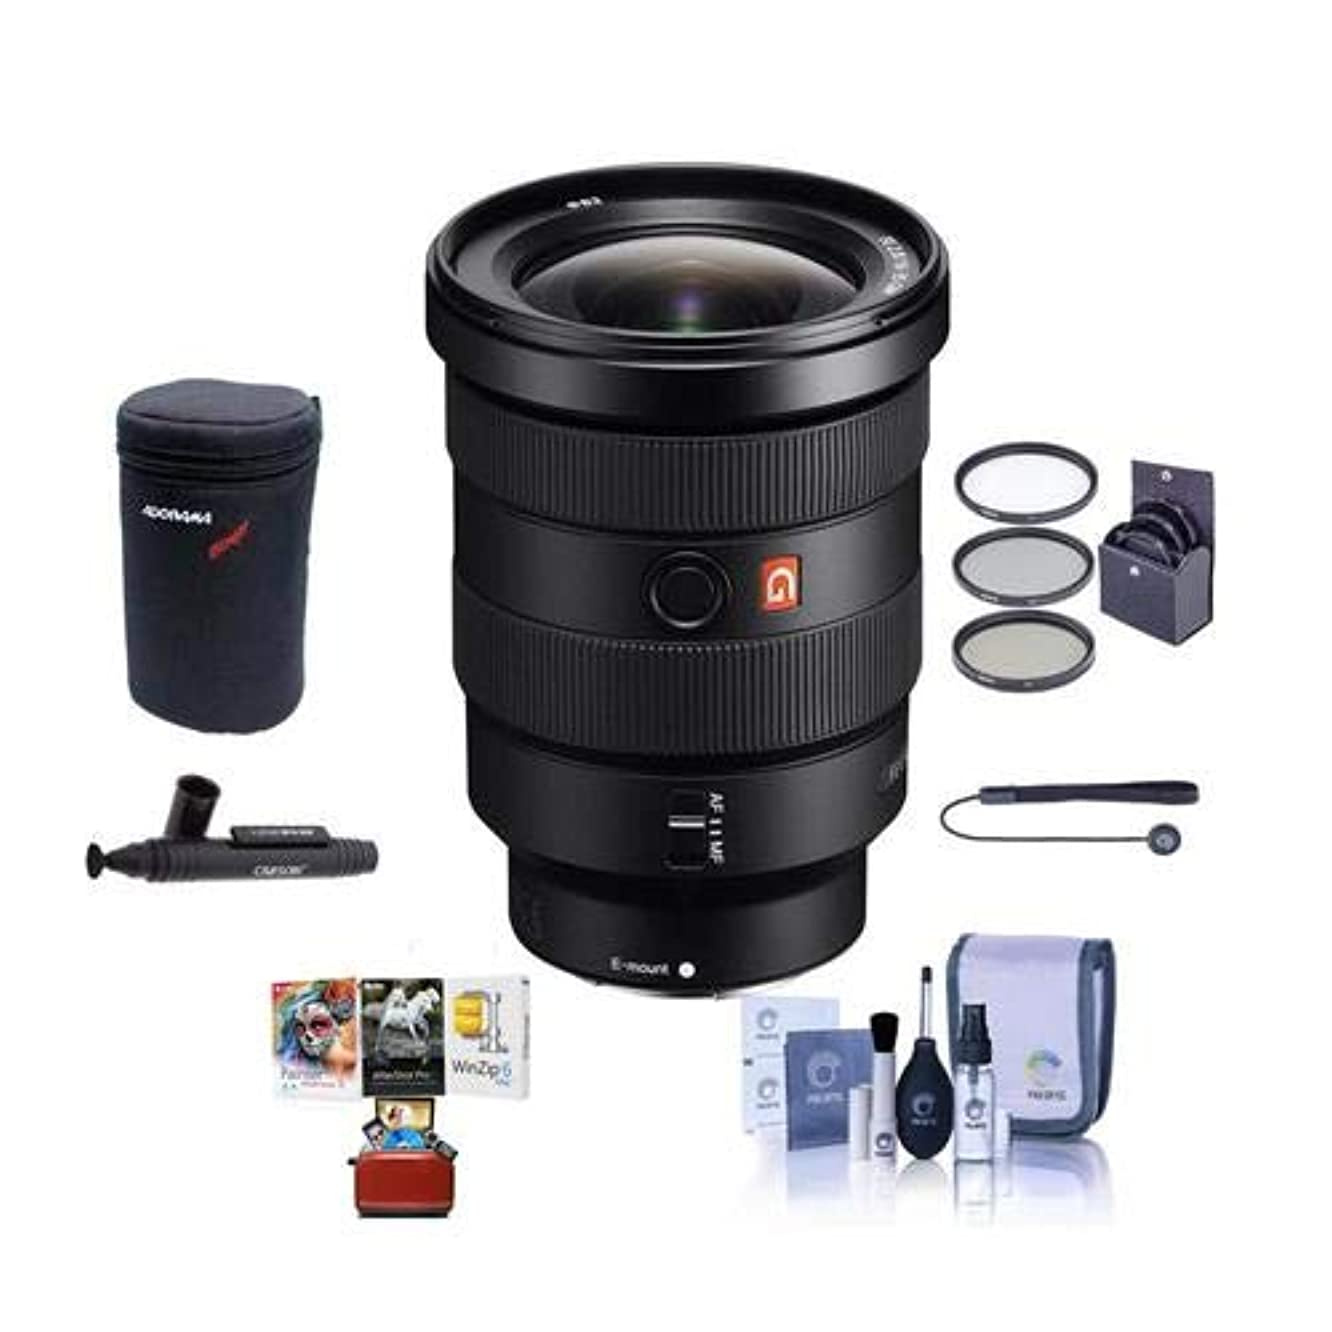 Sony FE 16-35mm f/2.8 GM (G Master) E-Mount Lens - Bundle with 82mm Filter Kit, Lens Case, Cleaning Kit, Capleash II, Lenspen Lens Cleaner, Mac Software Package oxfgkjtib964554